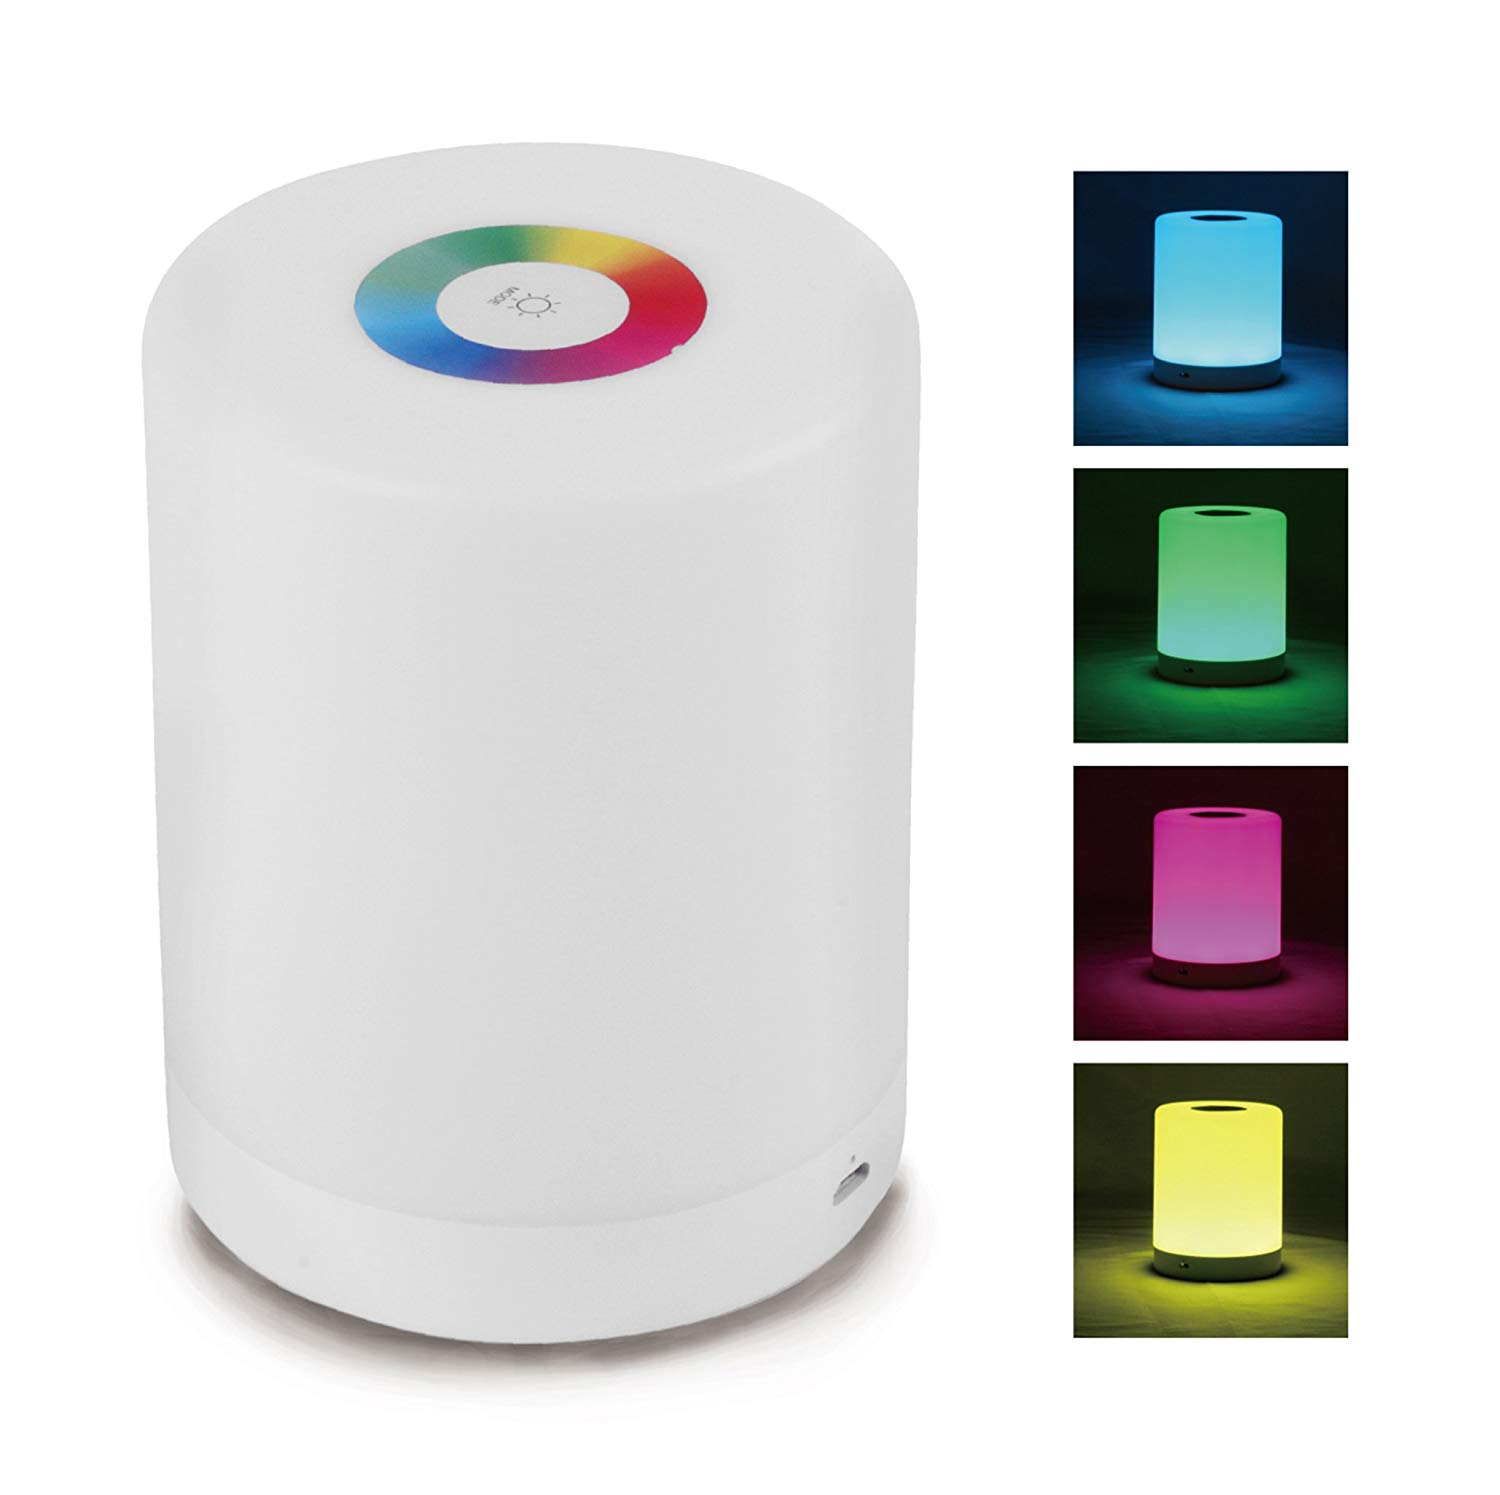 LED Table Lamp, Touch LED Lamp, Table Lamp LED, LED Bedside Table Lamp, Warm White Light & Color Changing RGB LED Accent Desk Lamp, Rechargeable Dimmable Night Light, Reading Lamp - 4.5 x 3.5 inches